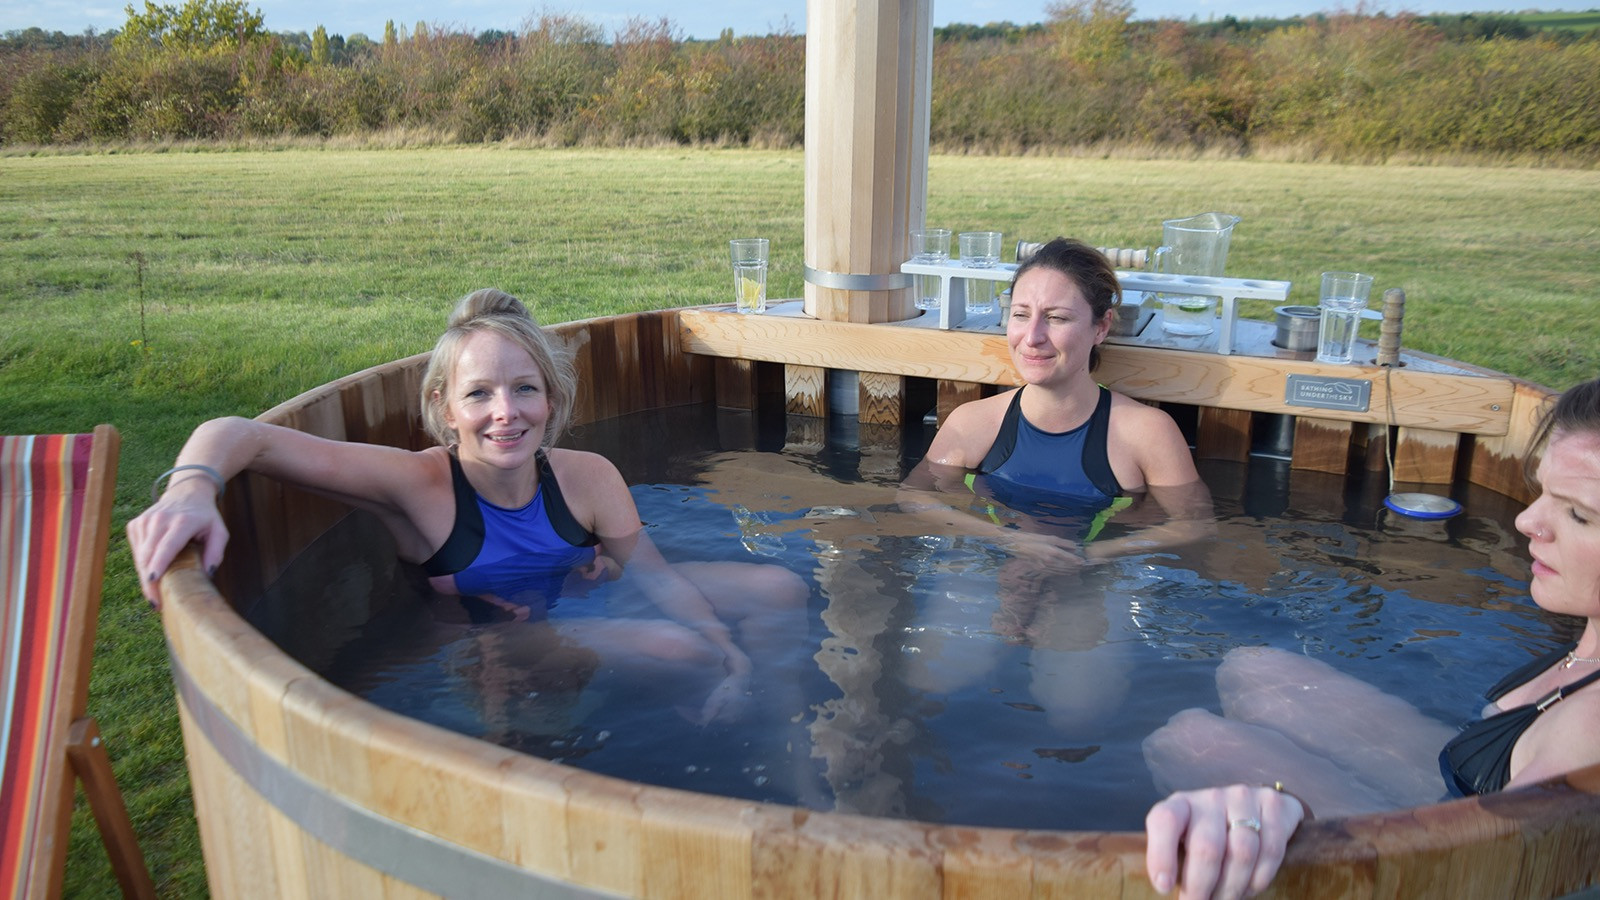 Image 4 of 8 - Experience Spa & Sauna to get an impression of WHM Fundamentals Workshop at Bourn